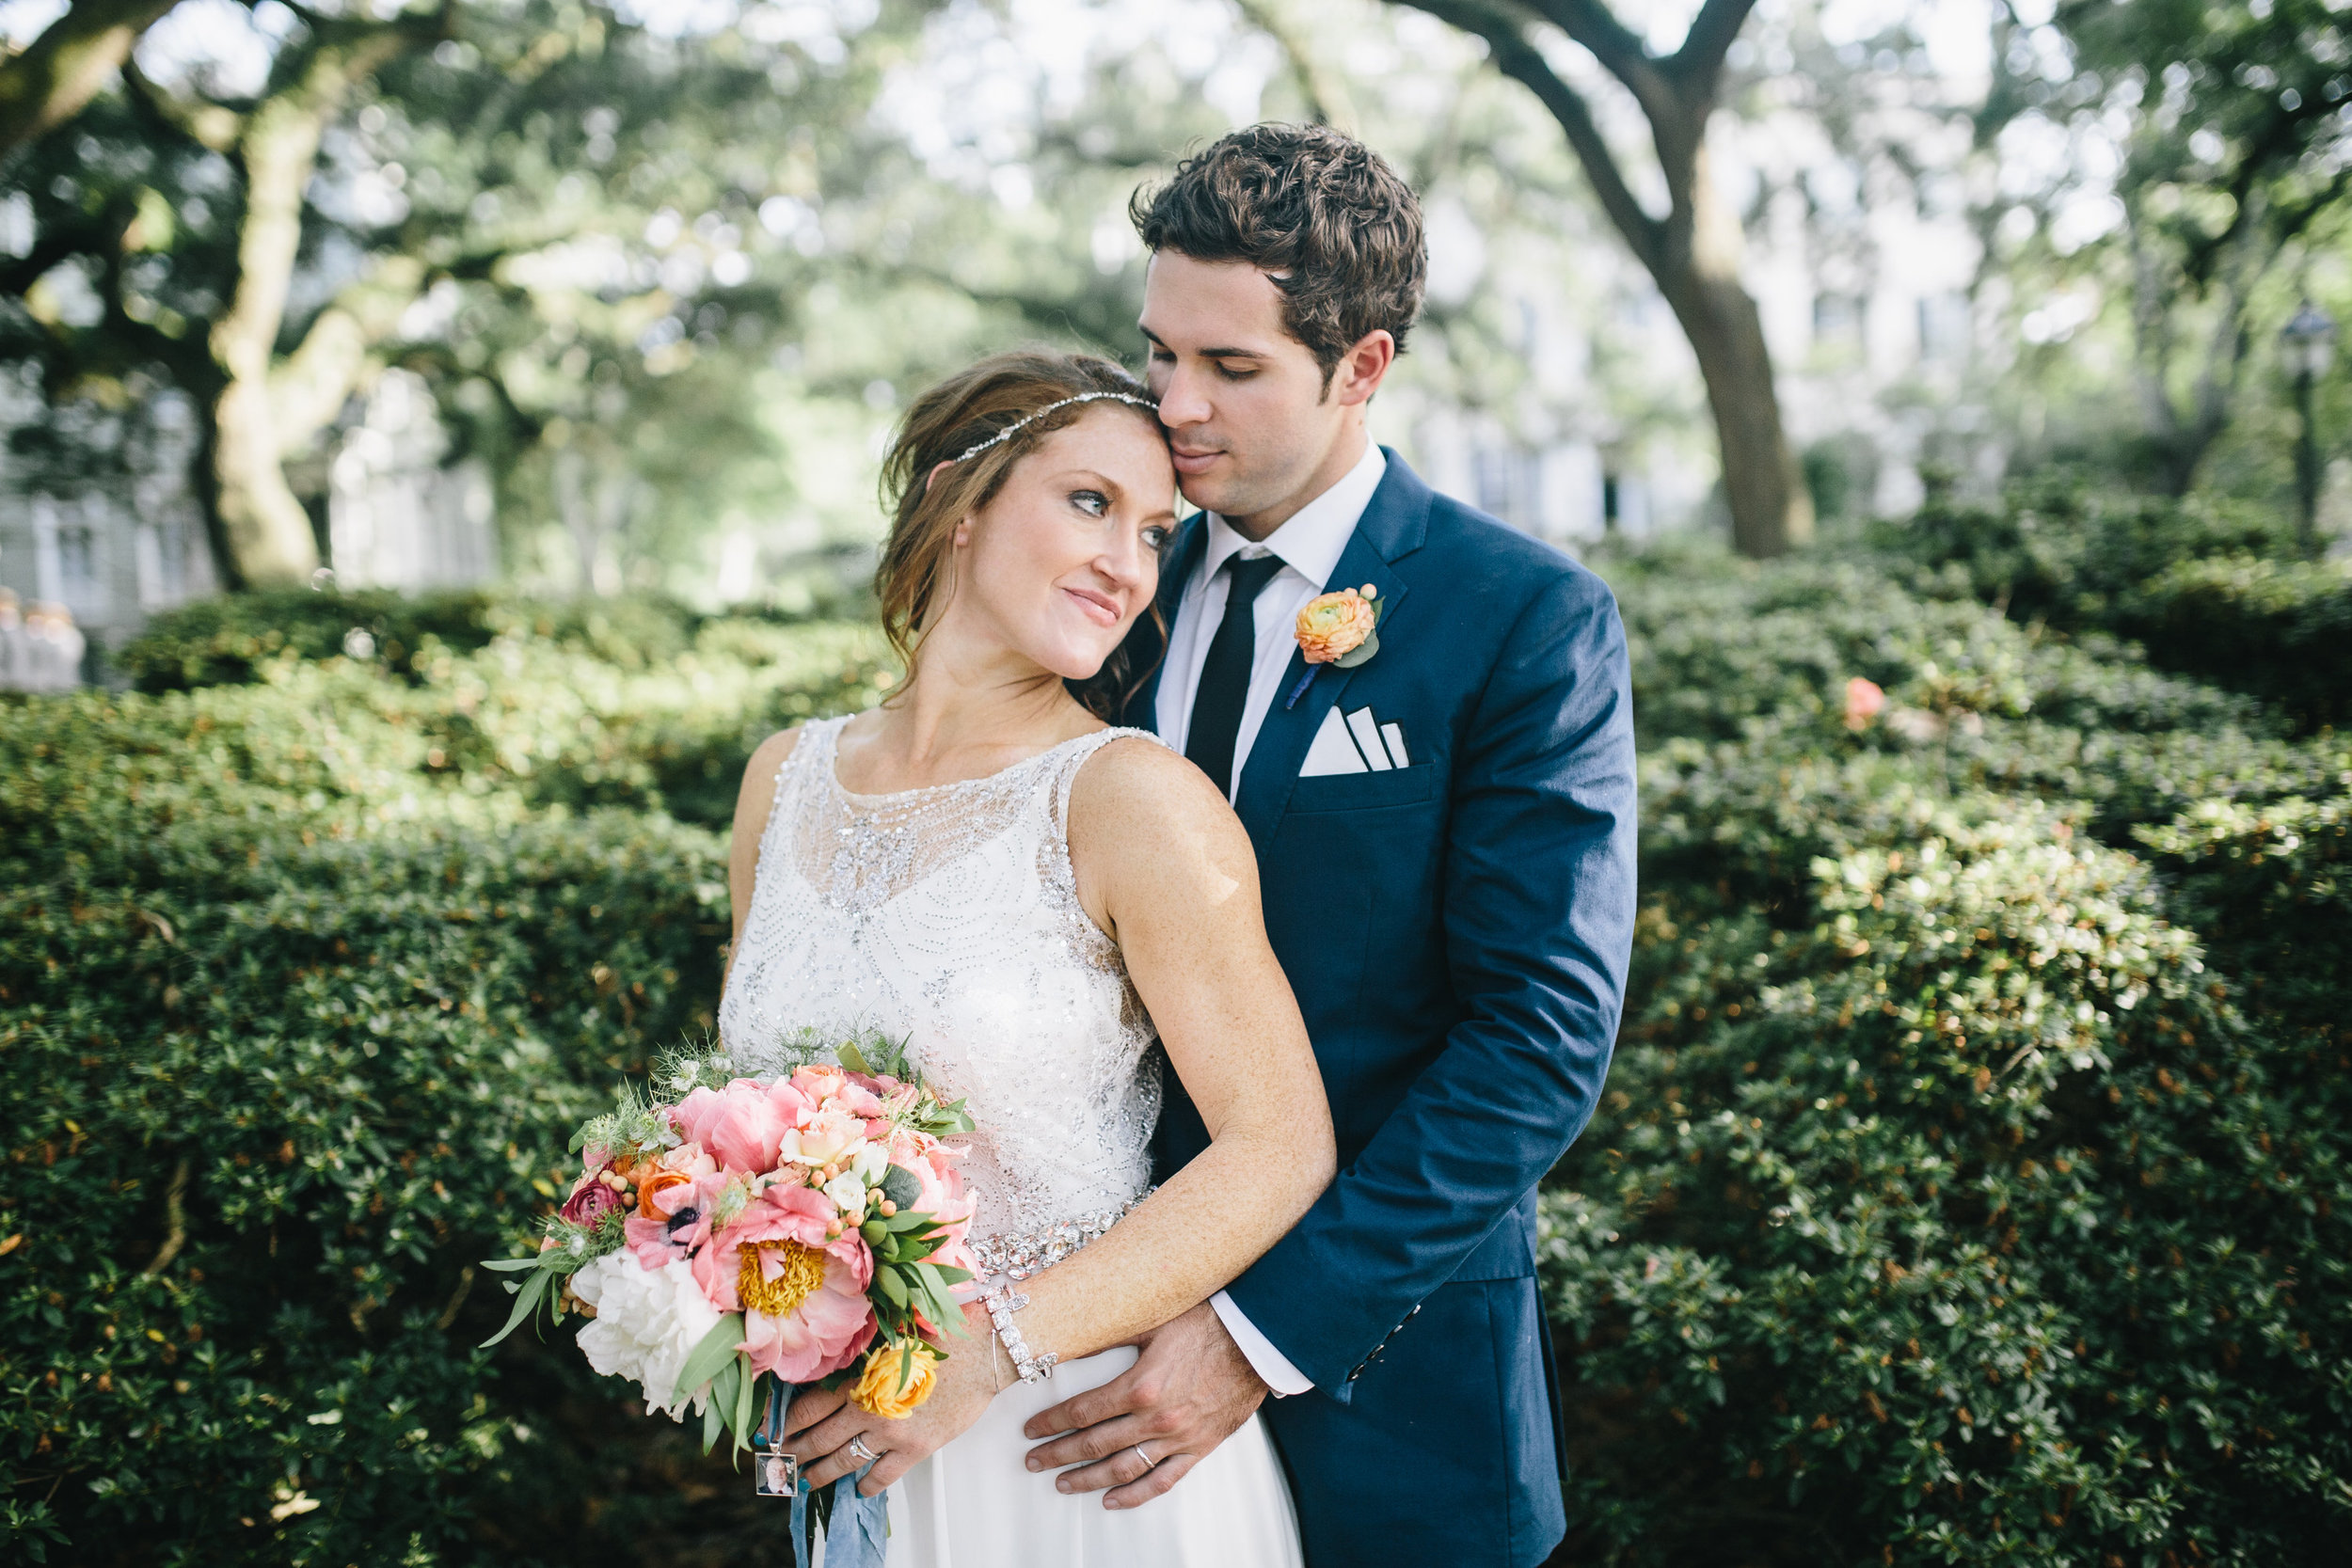 mackensey-alexander-photography-ivory-and-beau-bridal-boutique-from-this-day-forward-wedding-planning-sarah-seven-gwen-savannah-bridal-boutique-savannah-wedding-dresses-savannah-bridal-boutique-savannah-wedding-planner-savannah-weddings-44.jpg